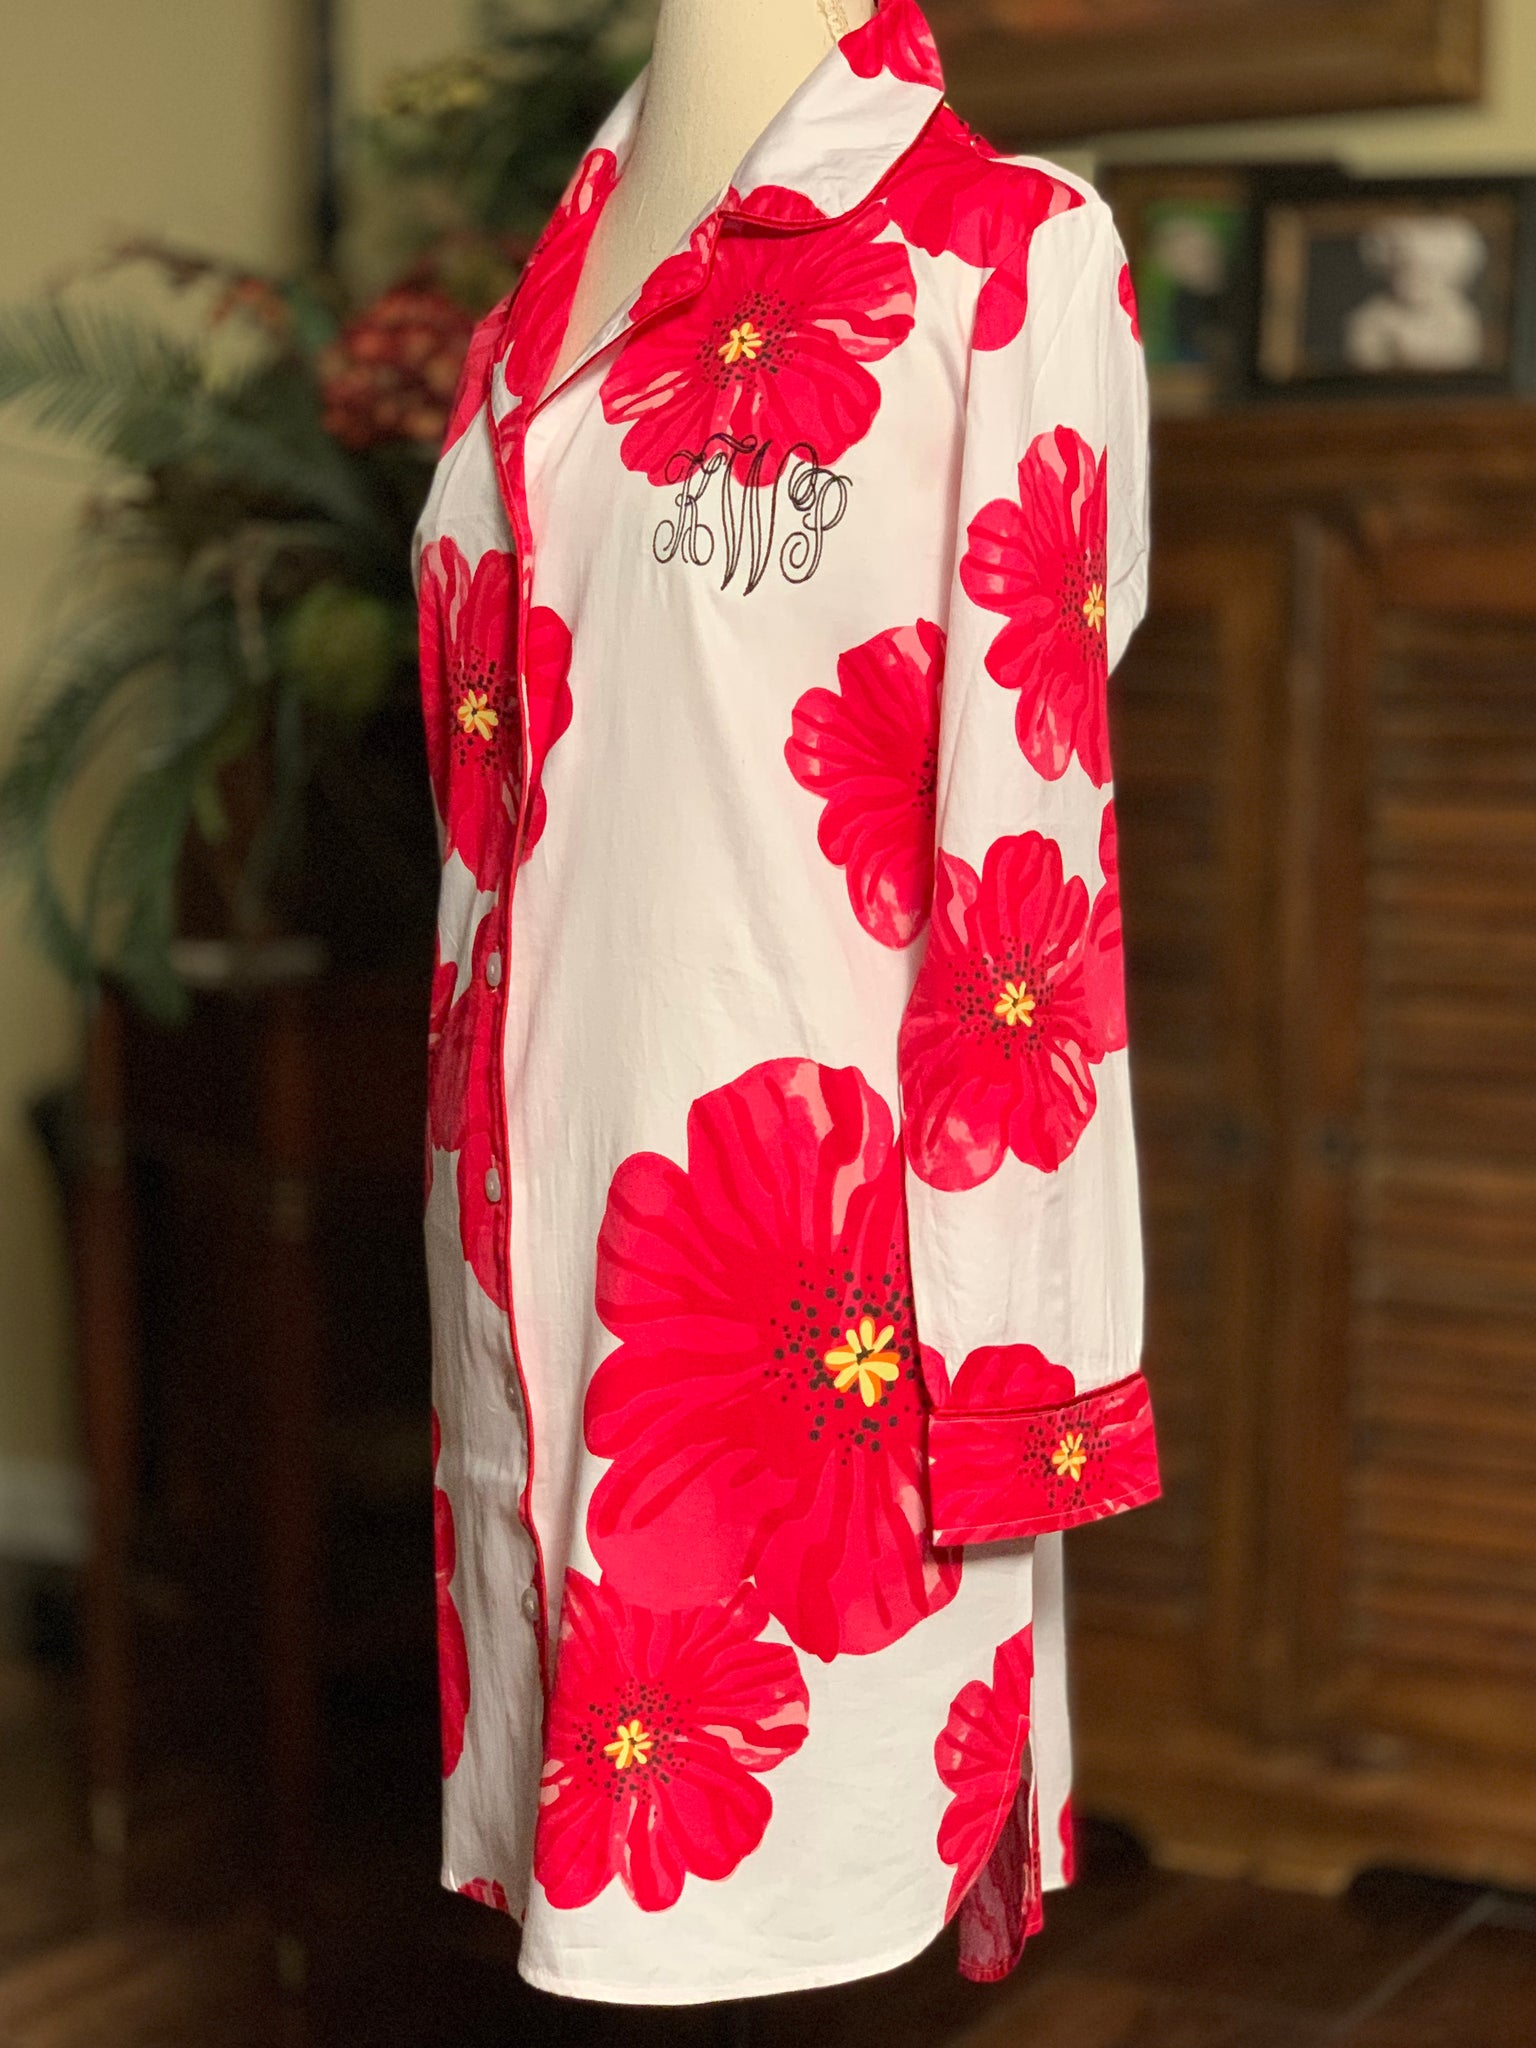 Poppy Sleep Shirt Pajama